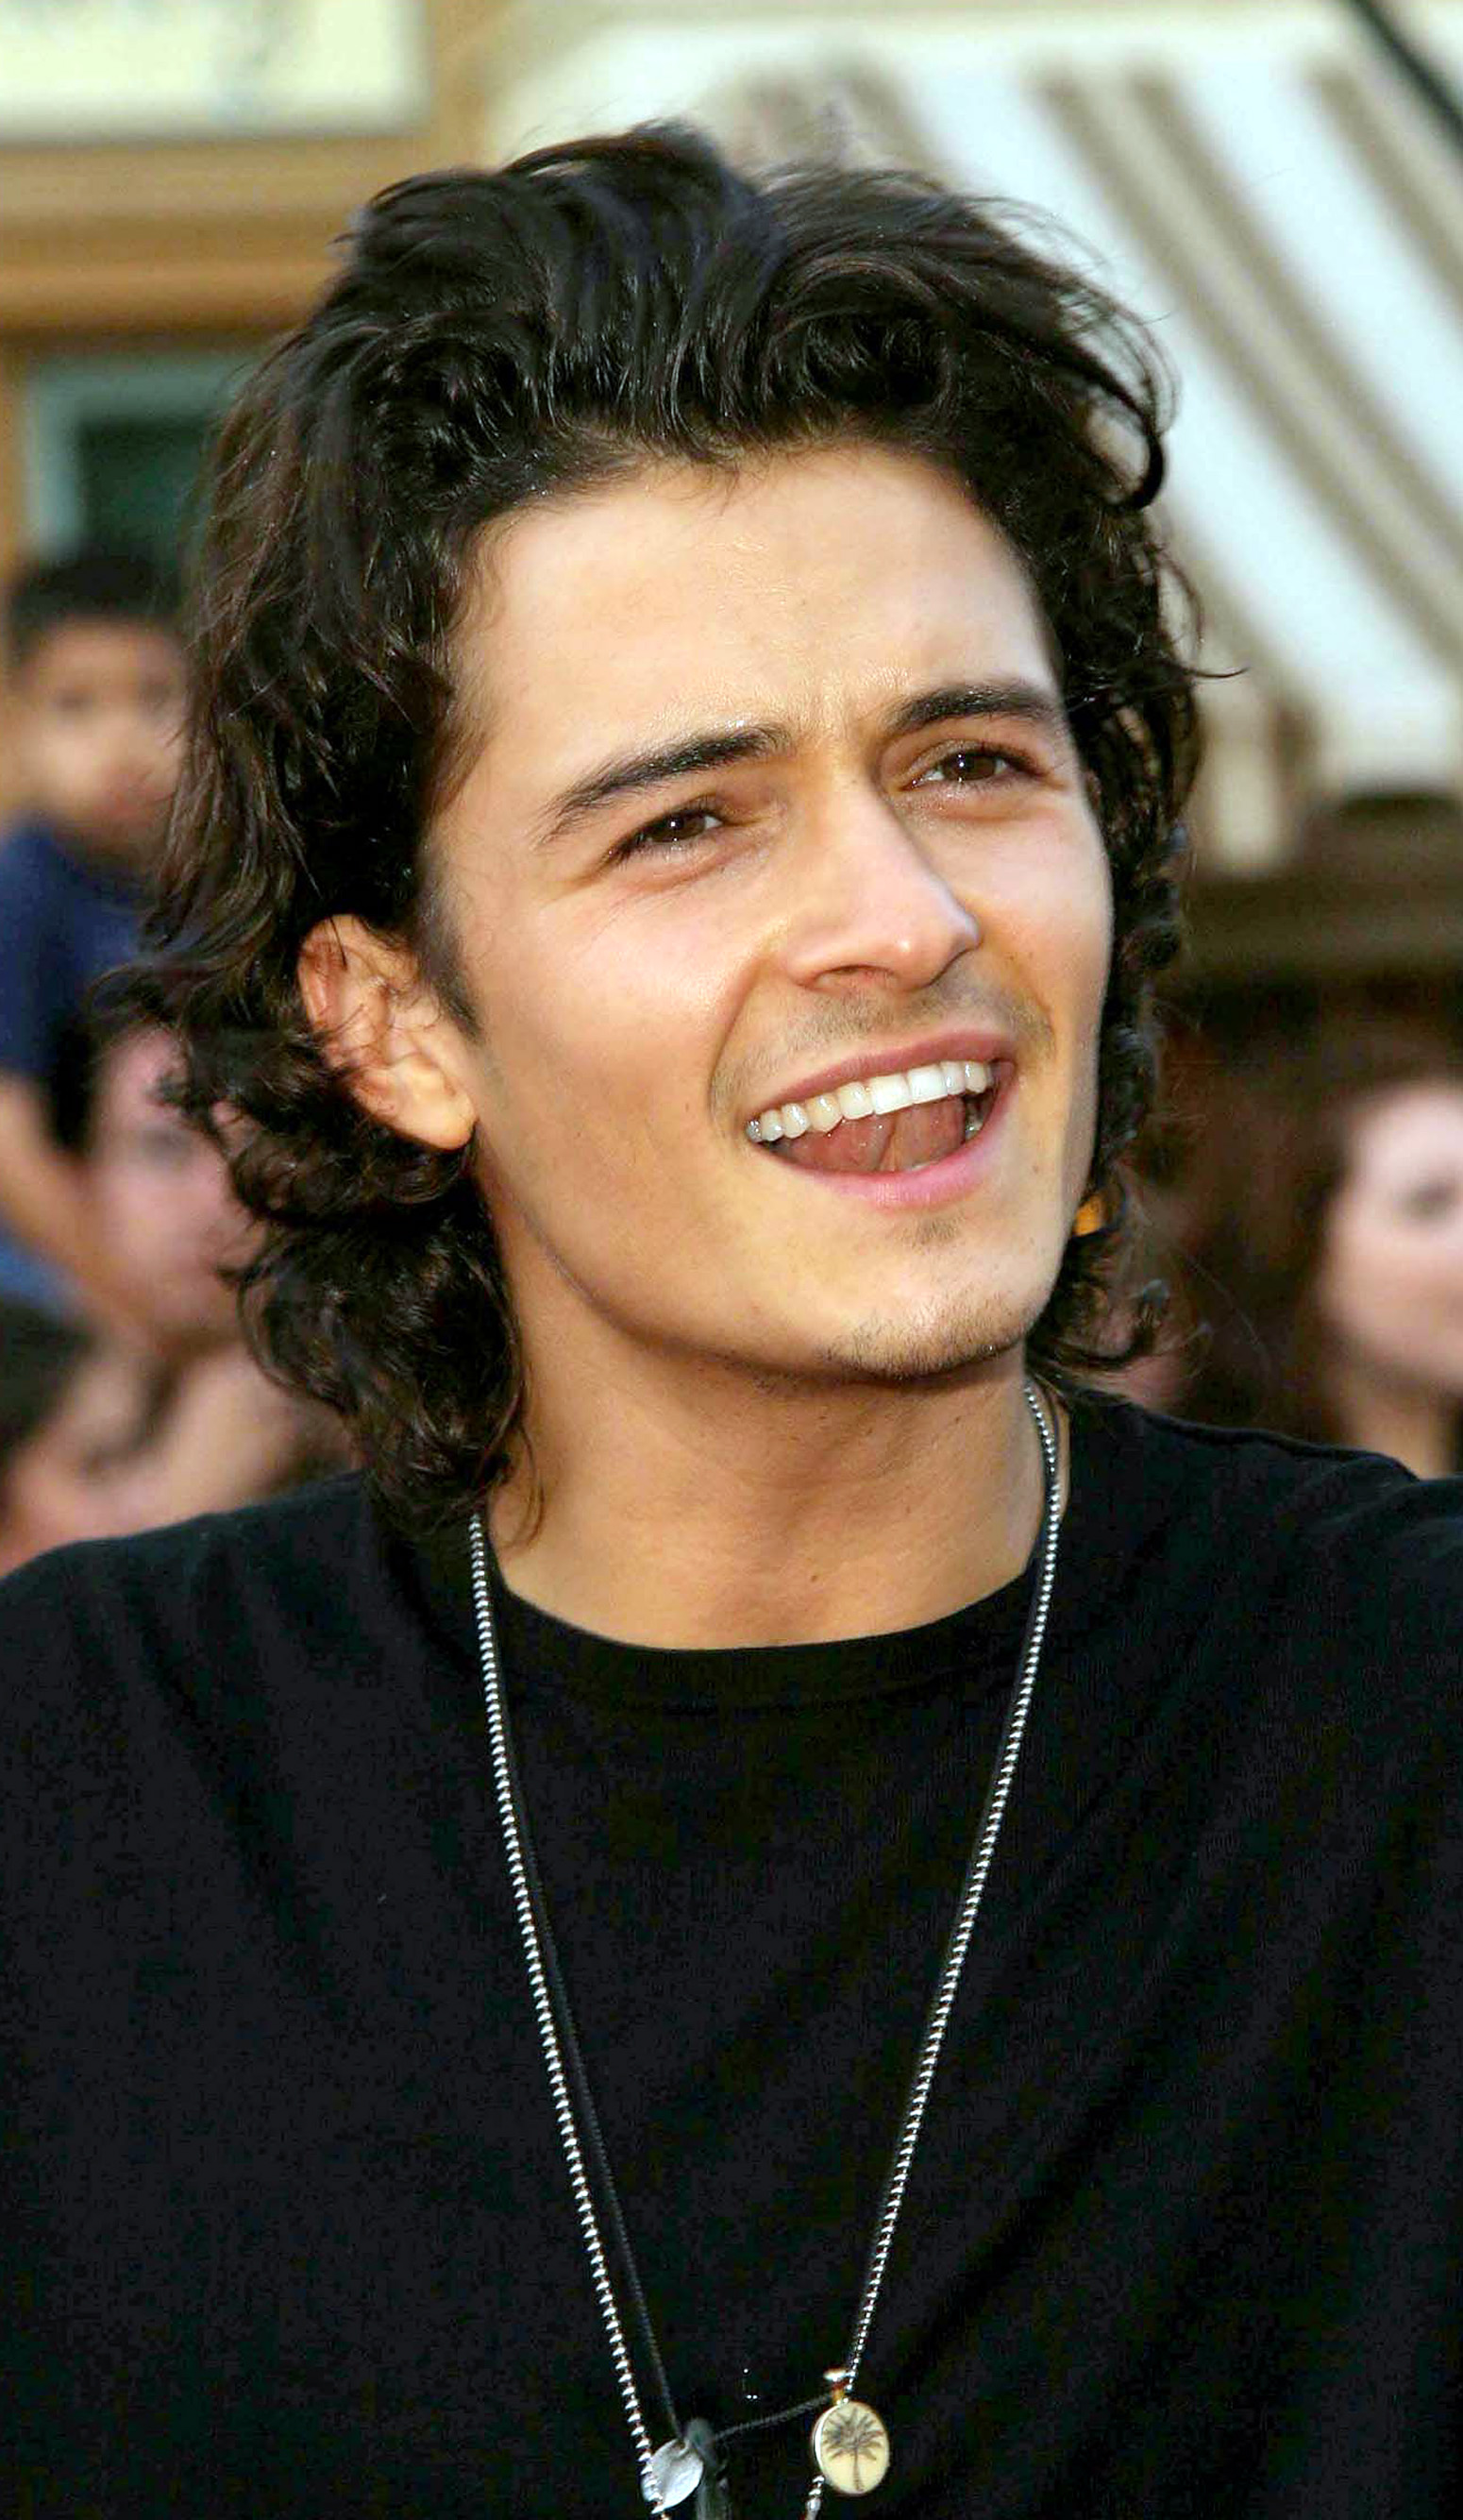 orlando bloom - photo #7